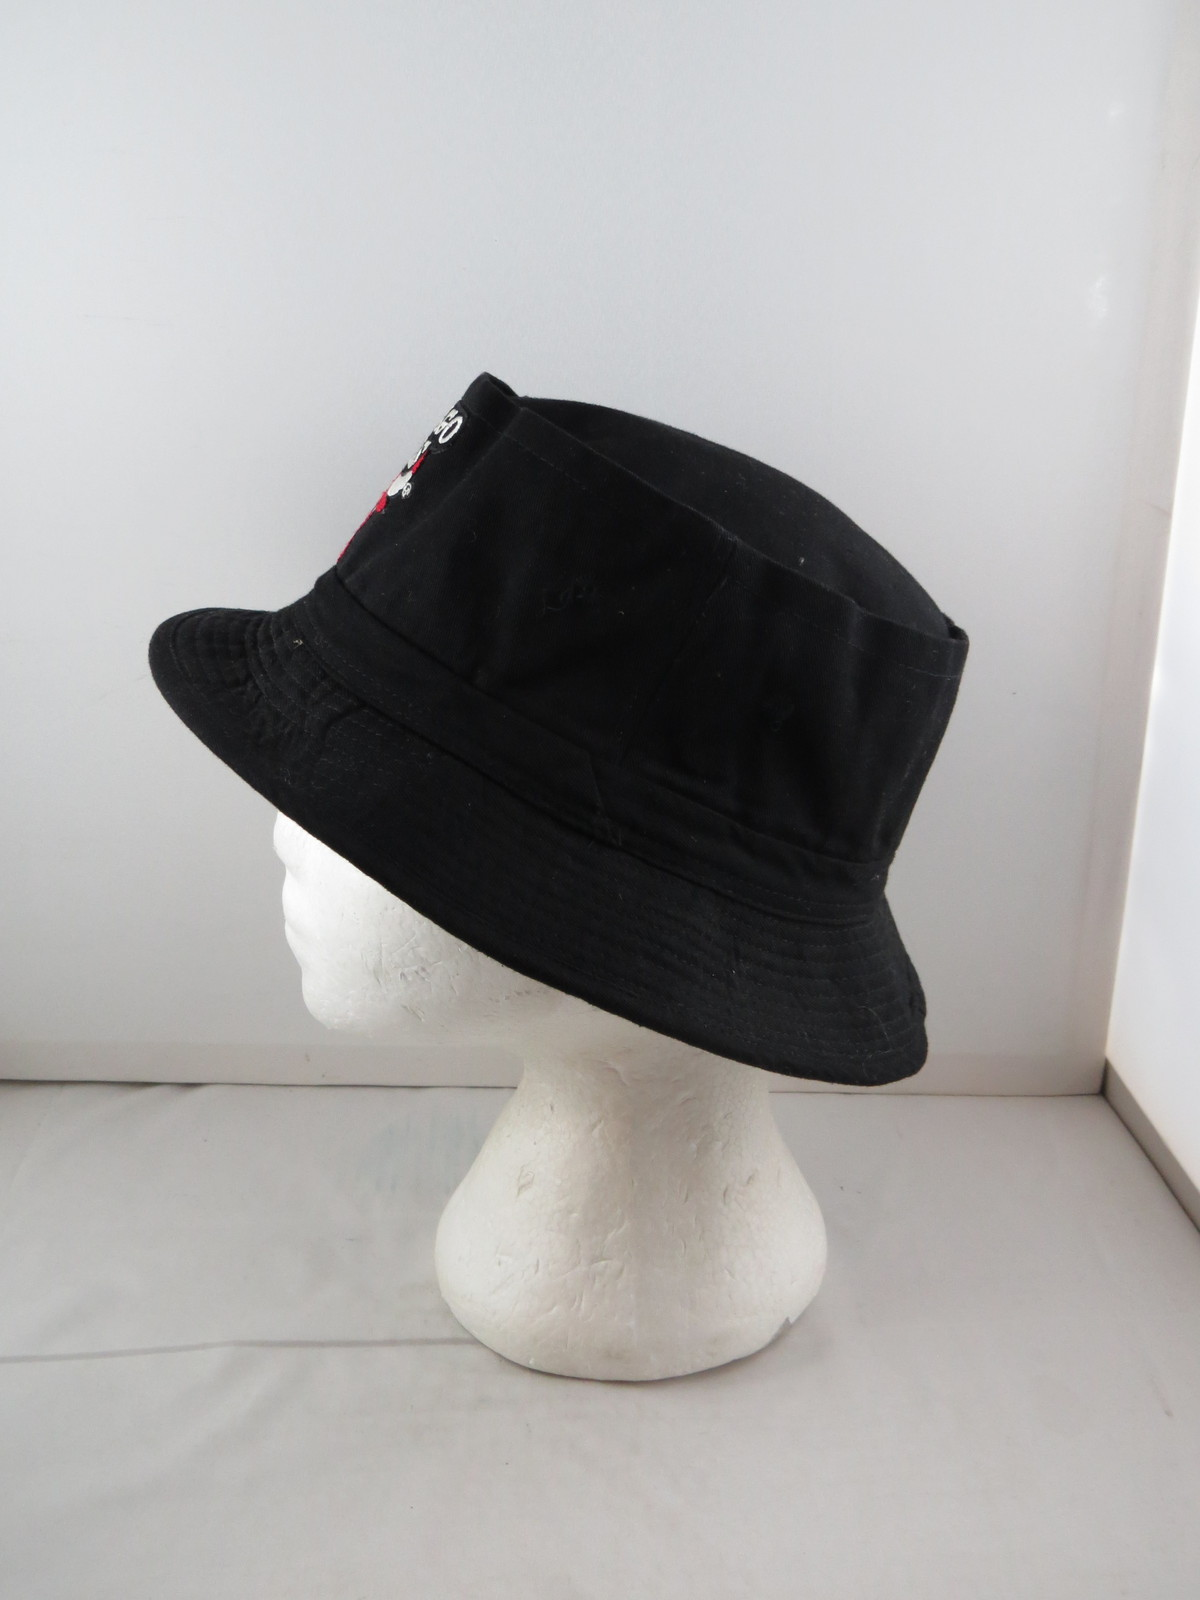 Chicago Bulls Bucket Hat (VTG) - All Black with Stitched logo - Adult One Size